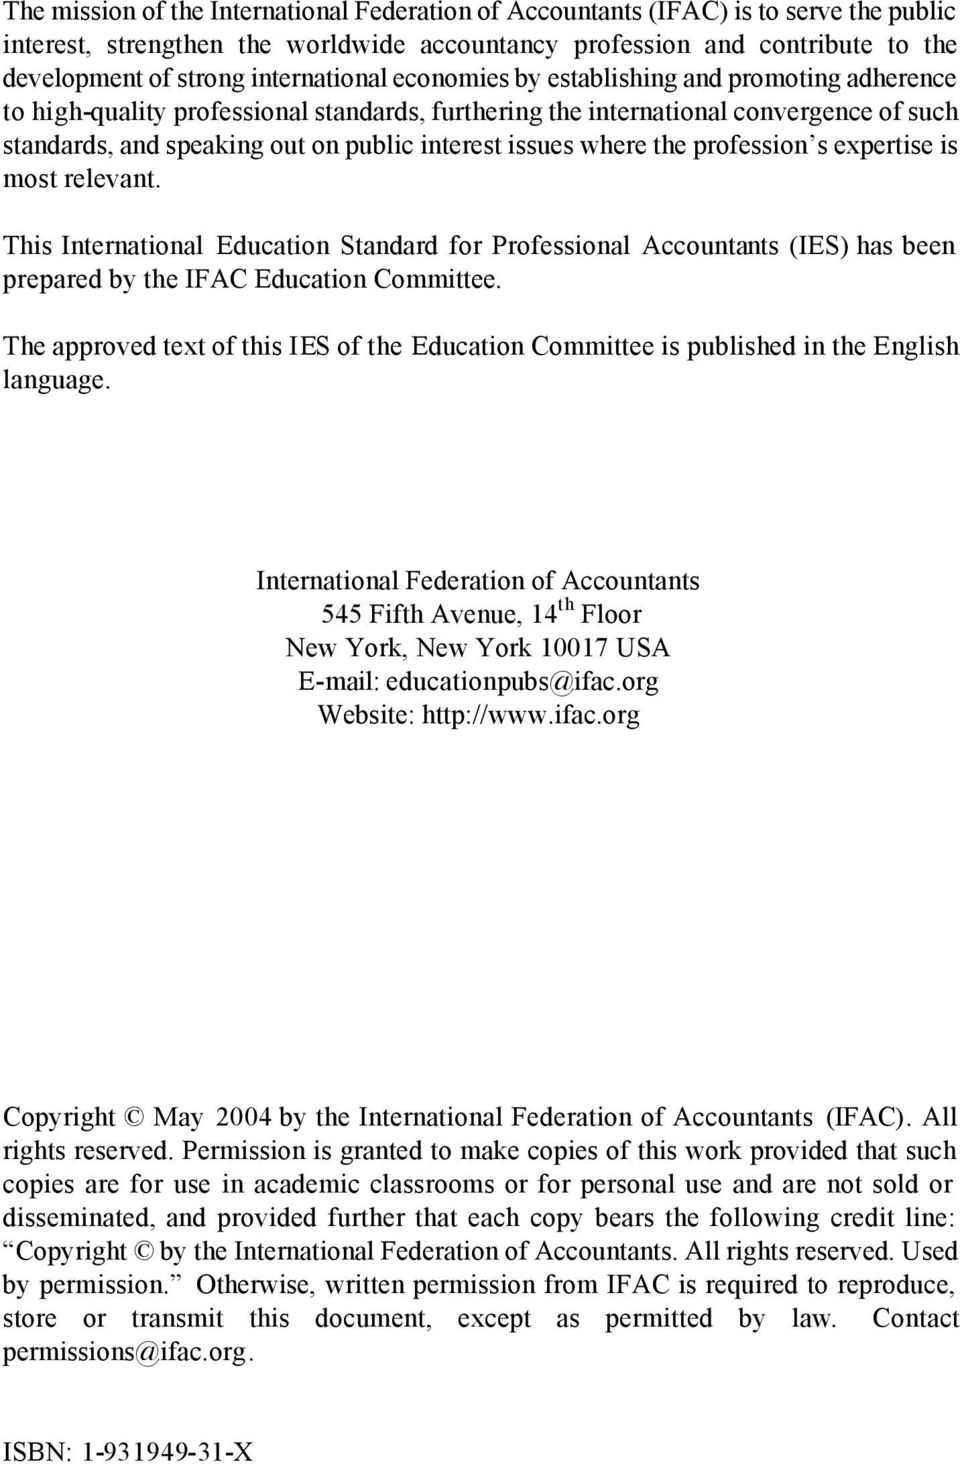 issues where the profession s expertise is most relevant. This International Education Standard for Professional Accountants (IES) has been prepared by the IFAC Education Committee.